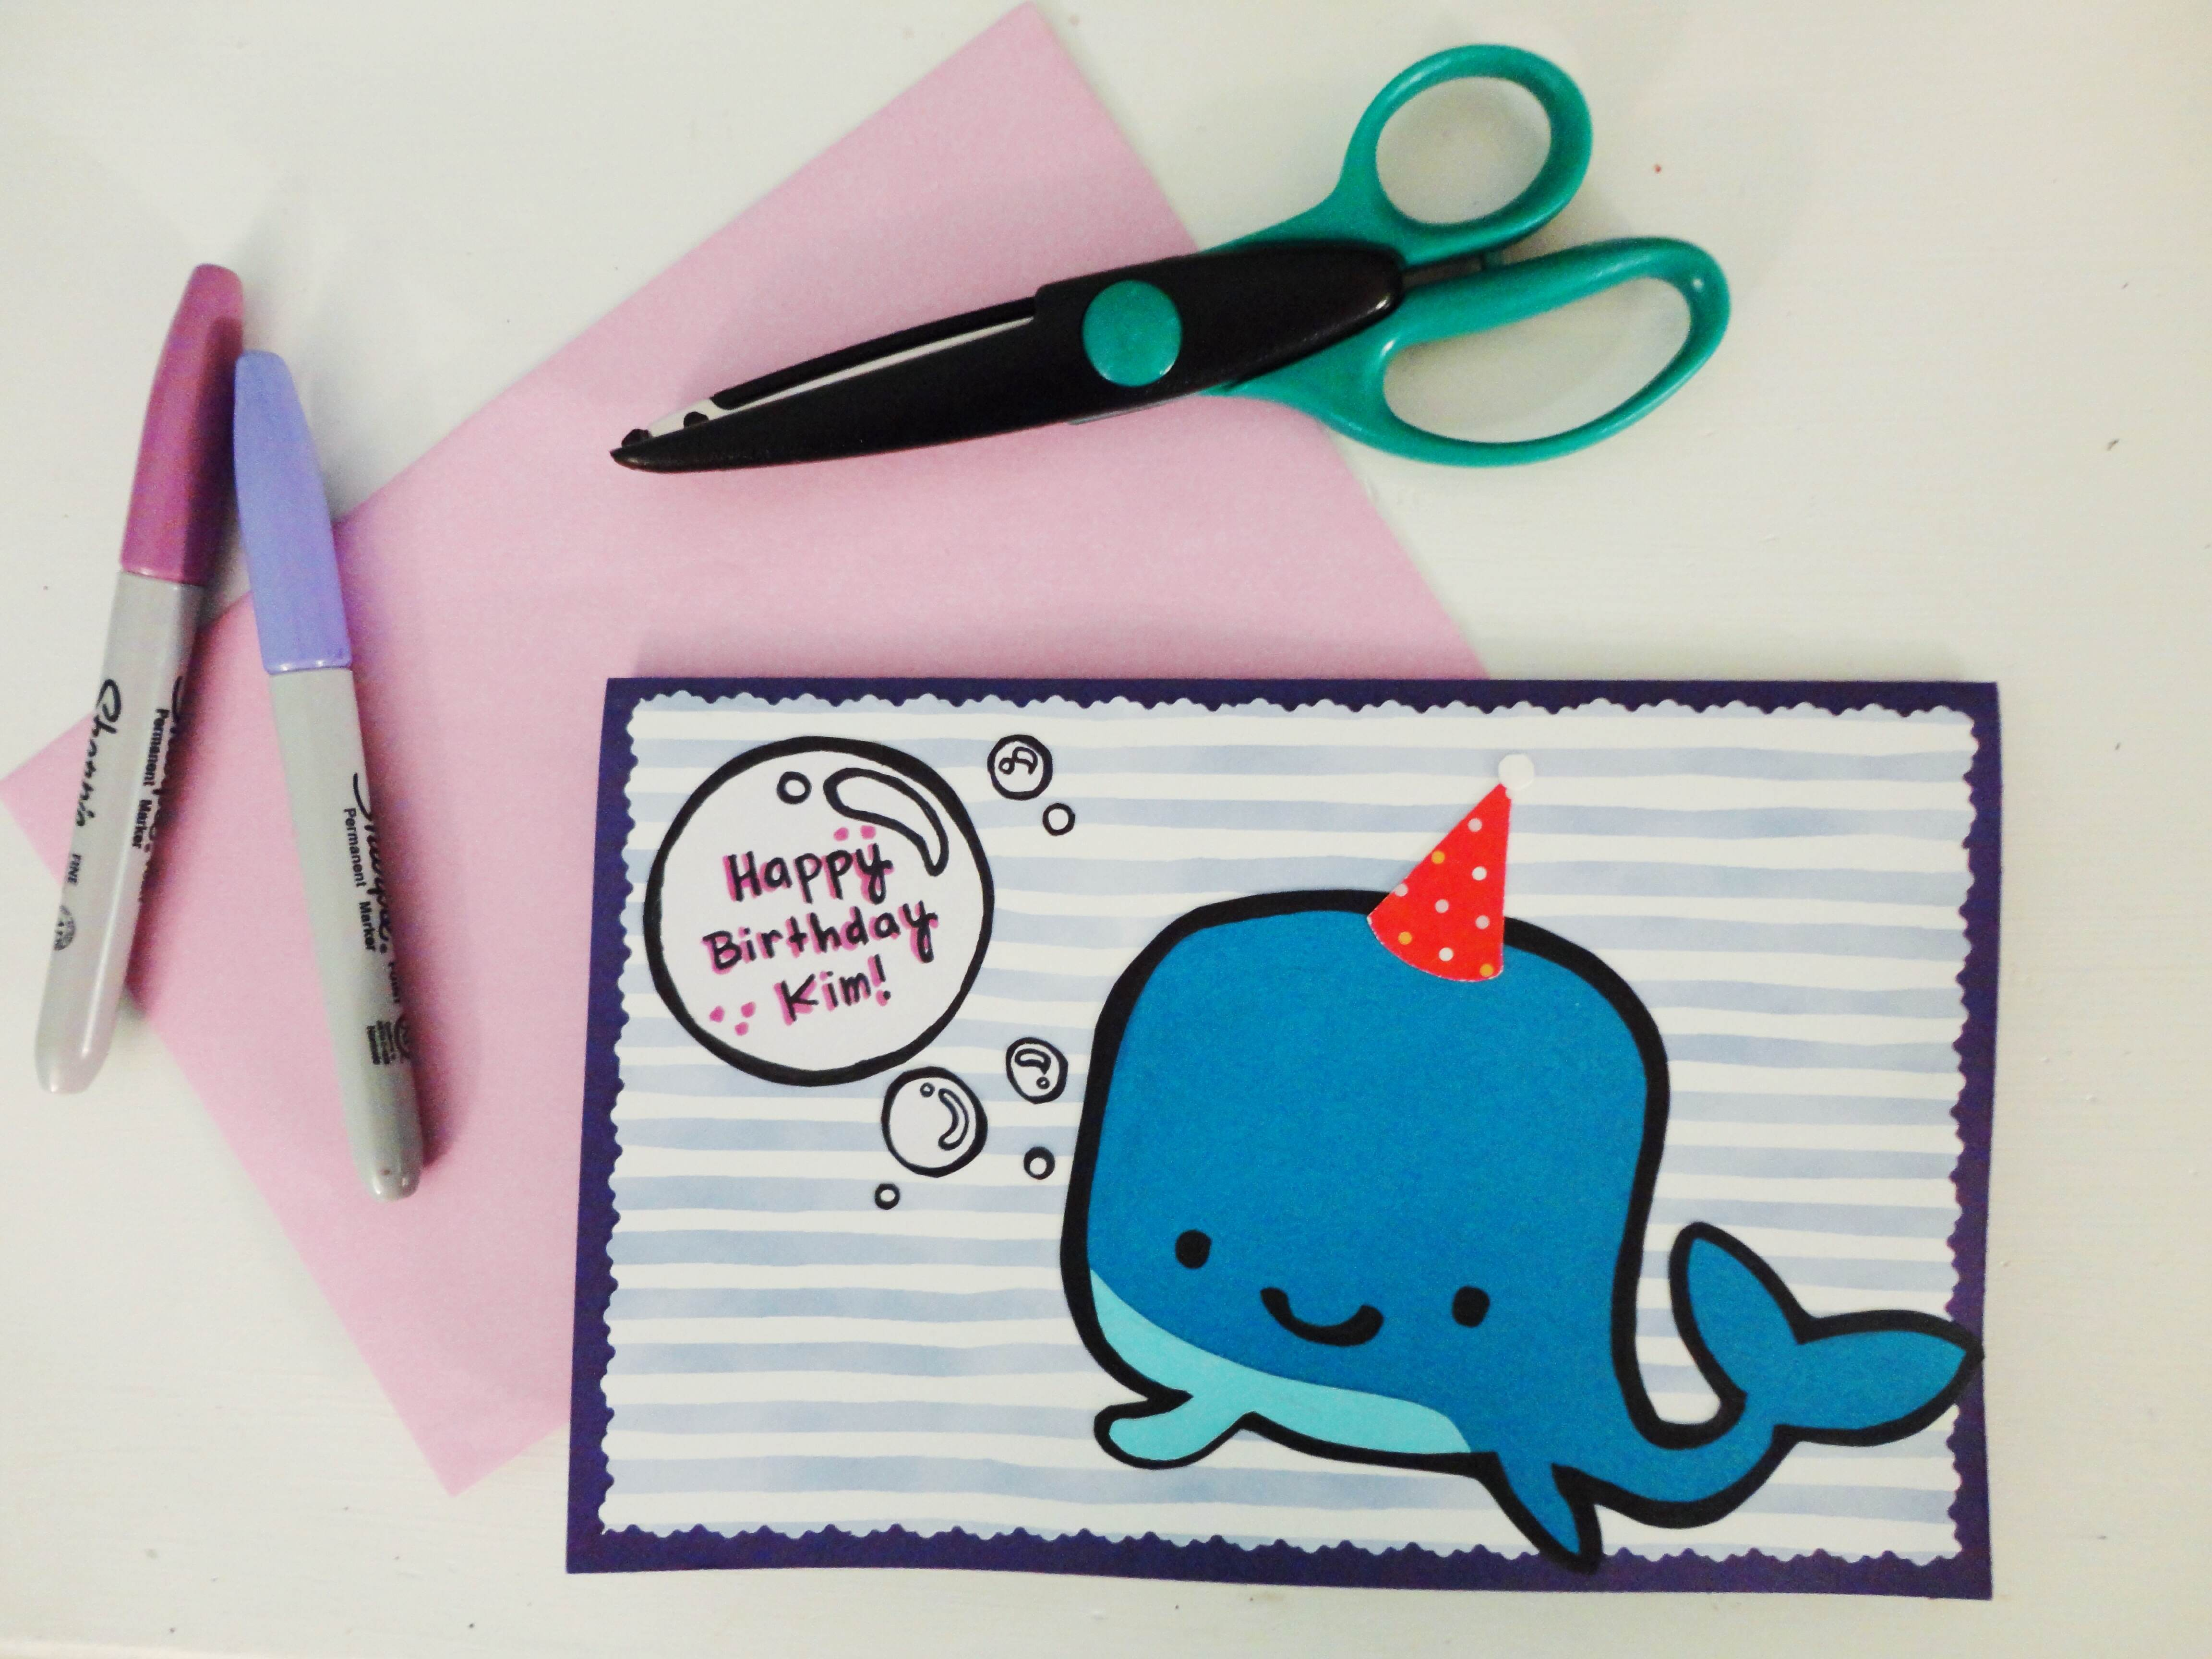 Card Making Ideas For Friends Birthday Inconvenient Friendships And A Birthday Card Diy The Diy Chacaruna